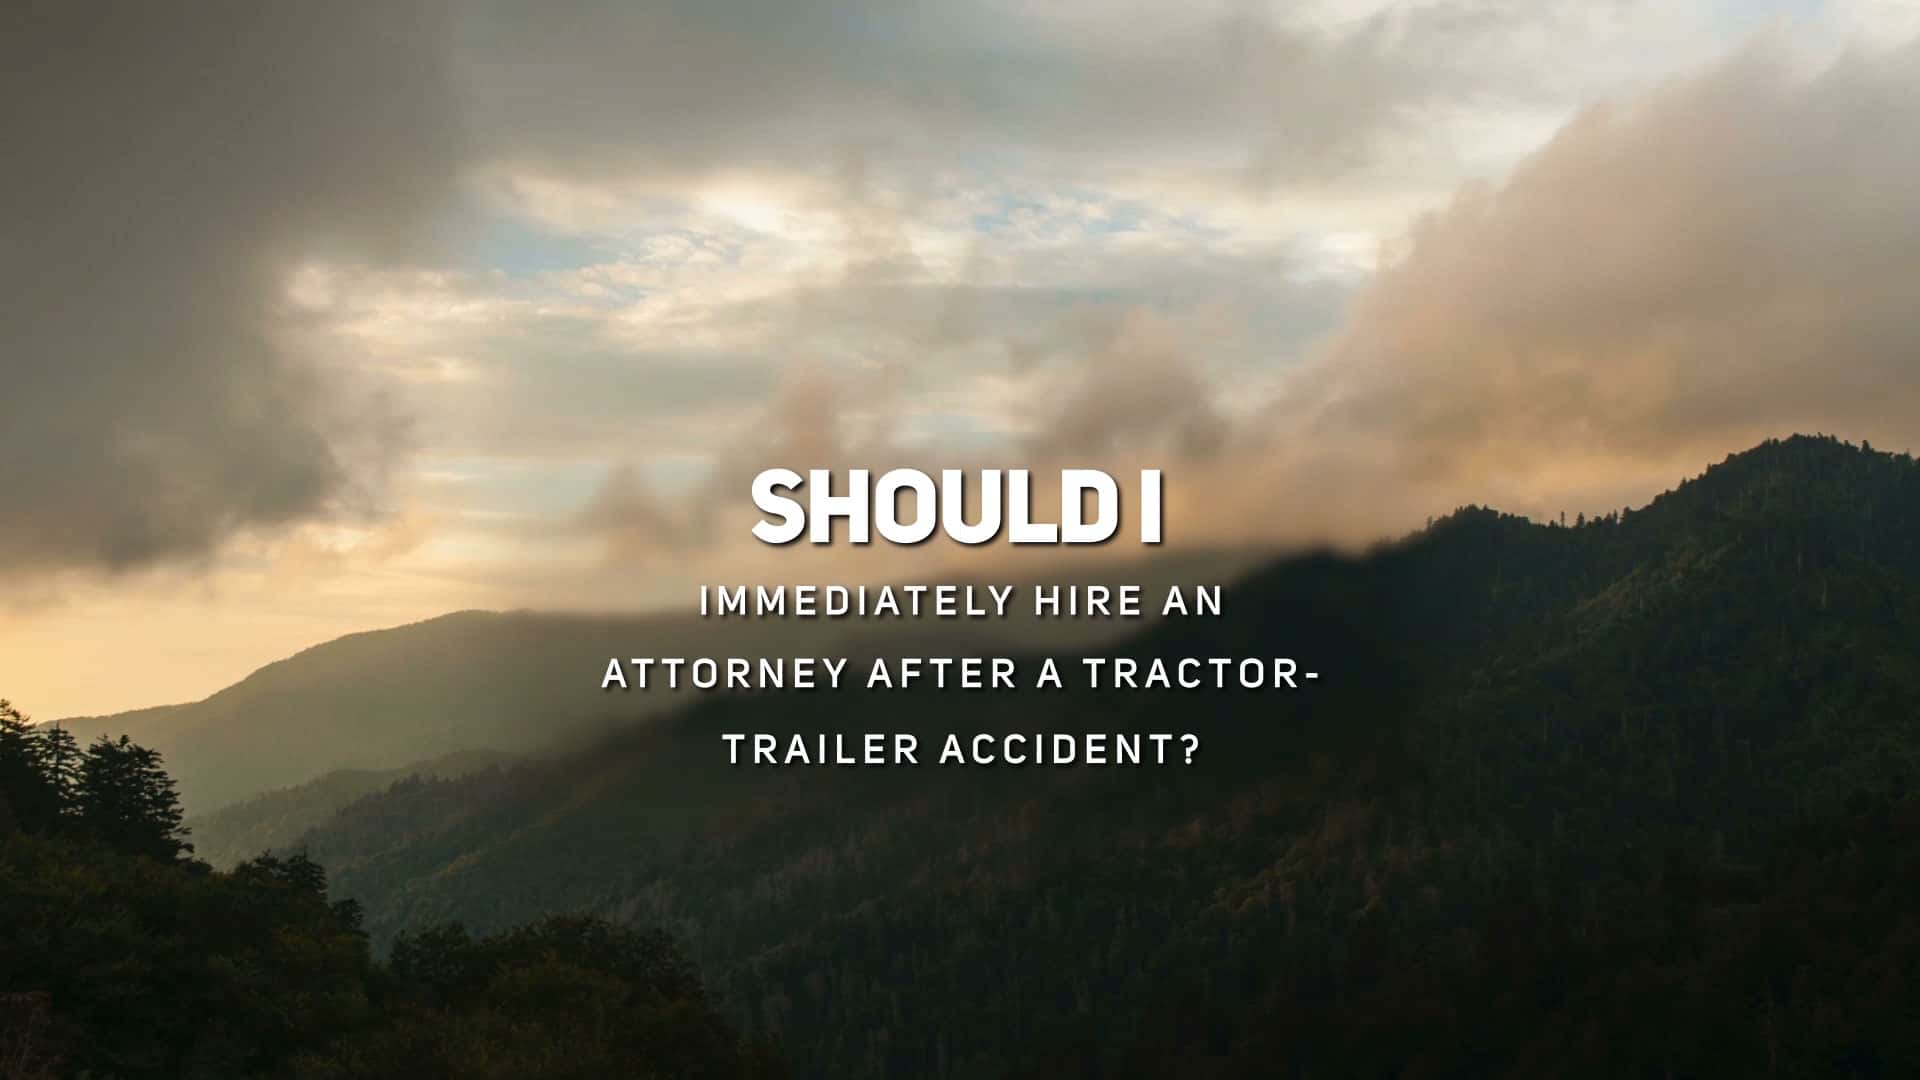 Should I Immediately Hire an Attorney After a Tractor-Trailer Accident